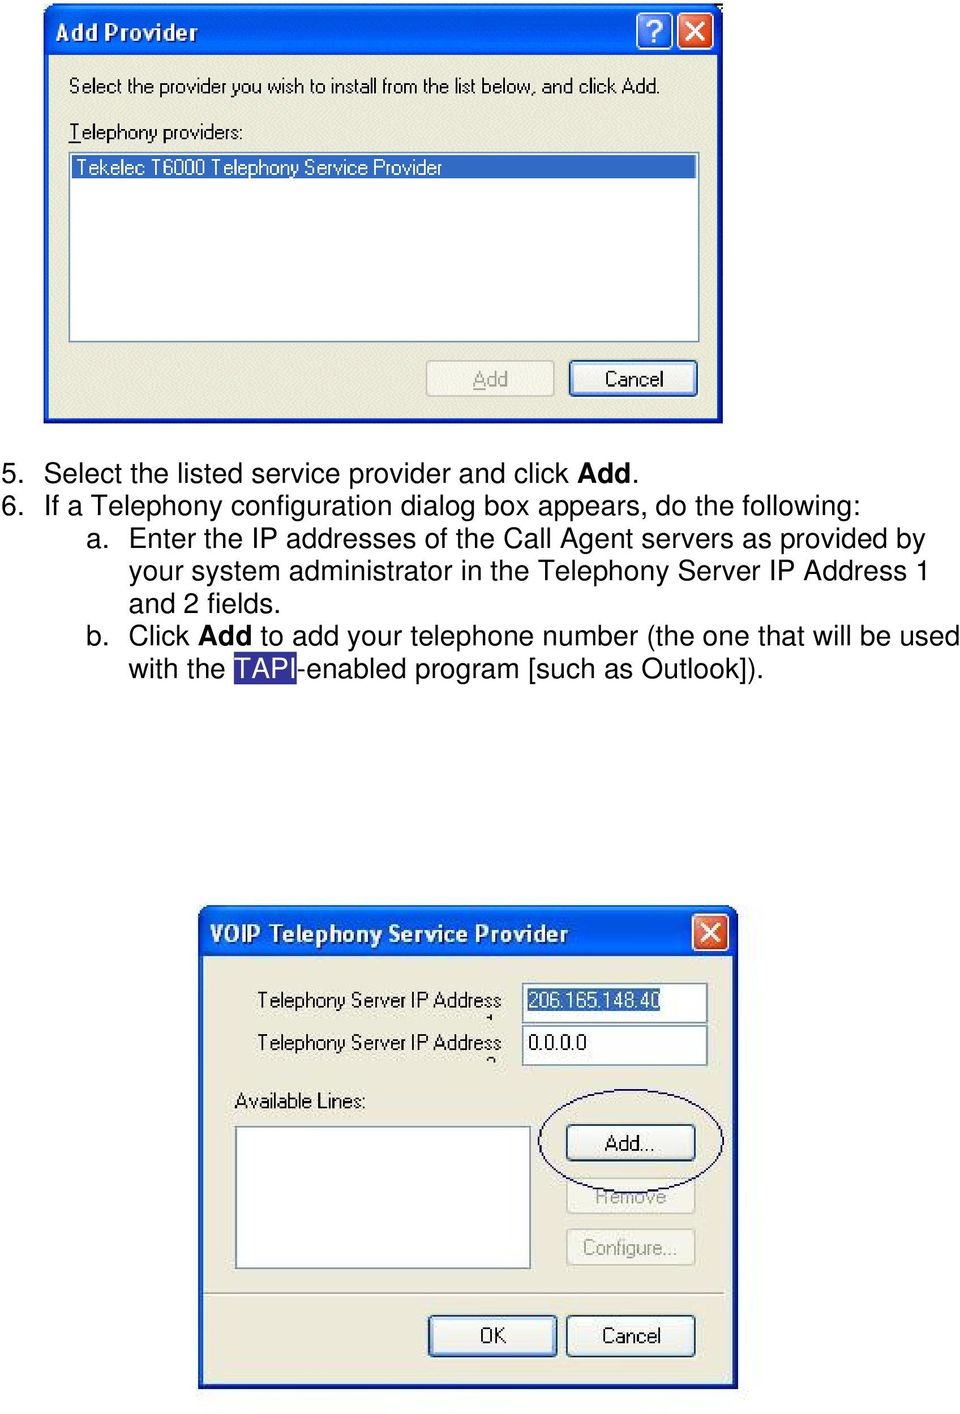 Enter the IP addresses of the Call Agent servers as provided by your system administrator in the